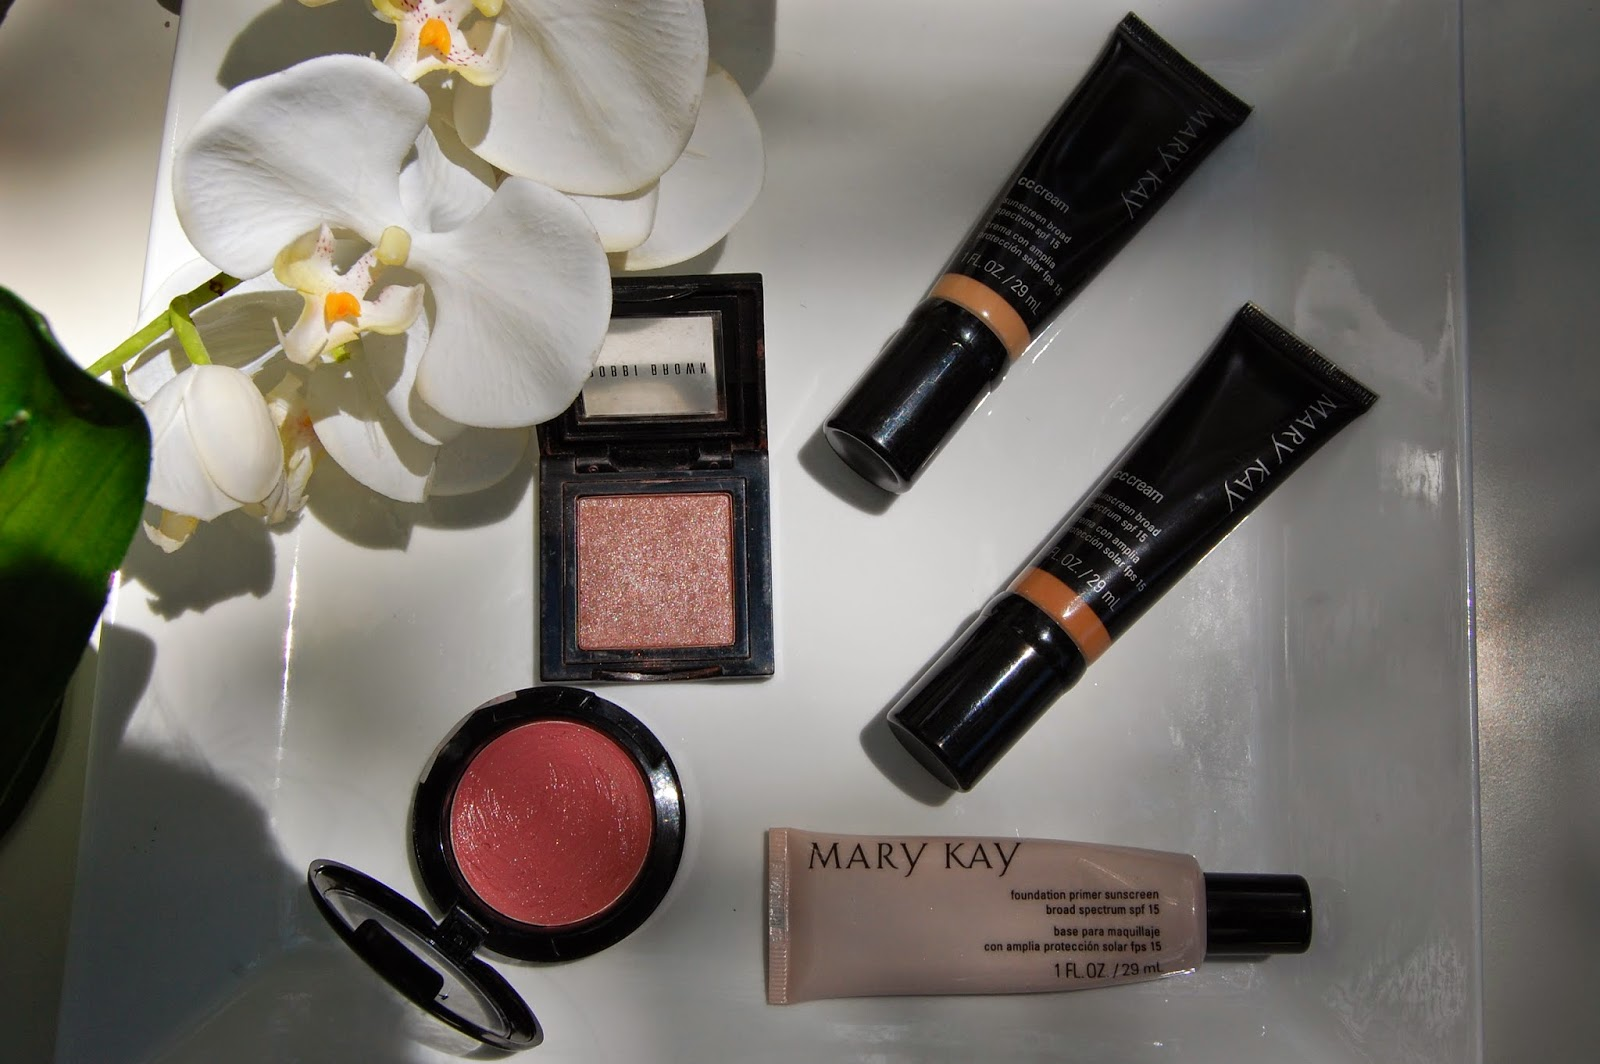 best anti humidity makeup. sweat proof foundation. mary kay bb cream, mary kay foudnation primer